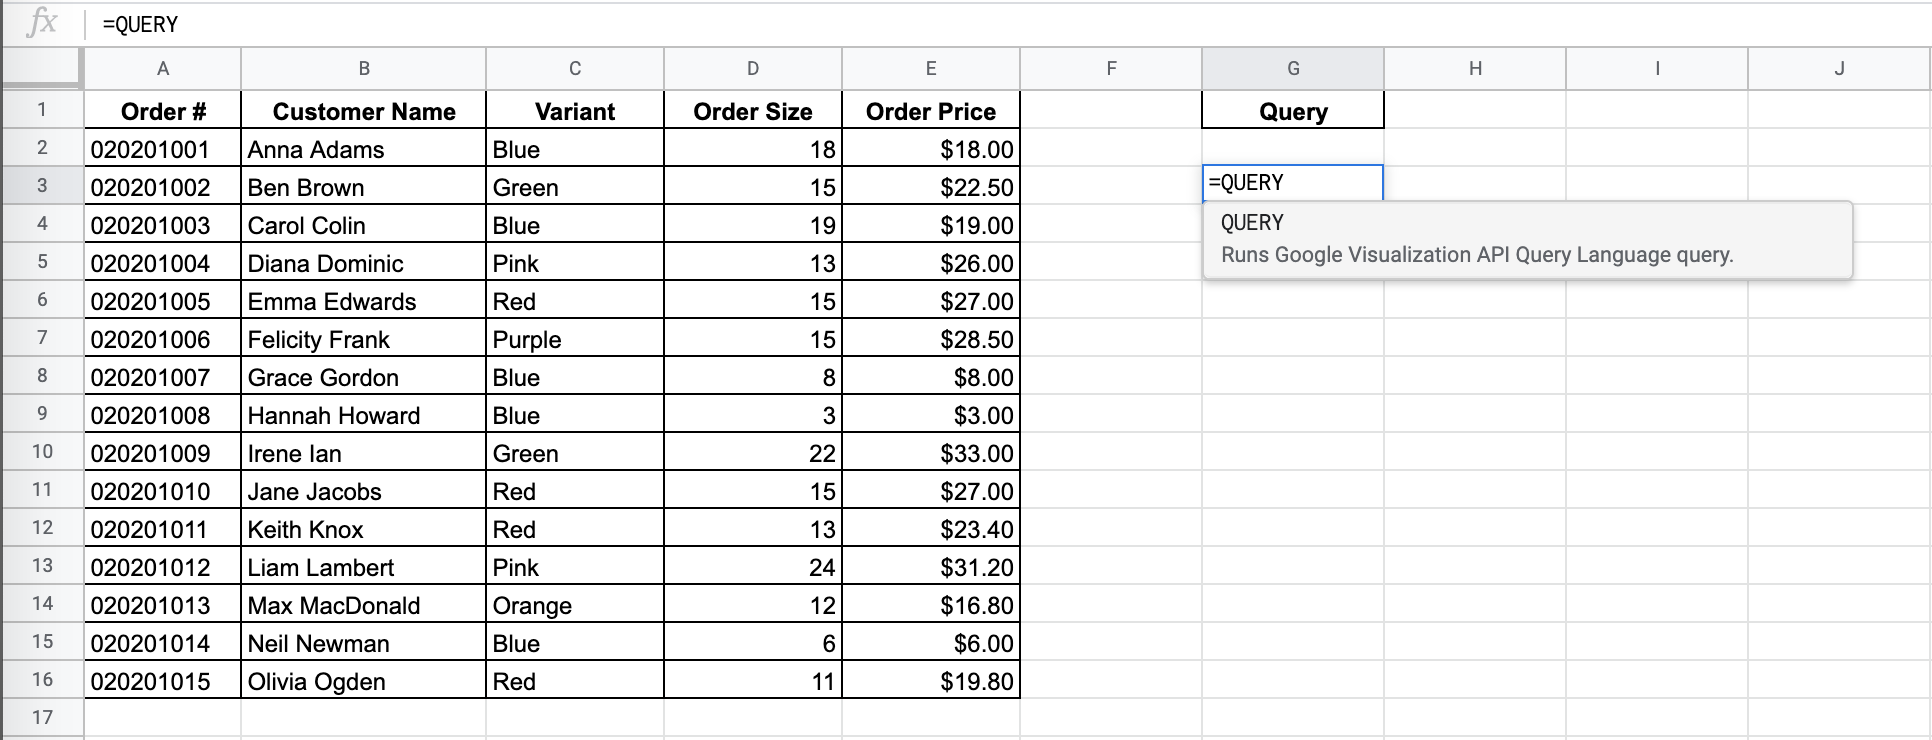 How to Limit Number of Rows in Google Sheets Query